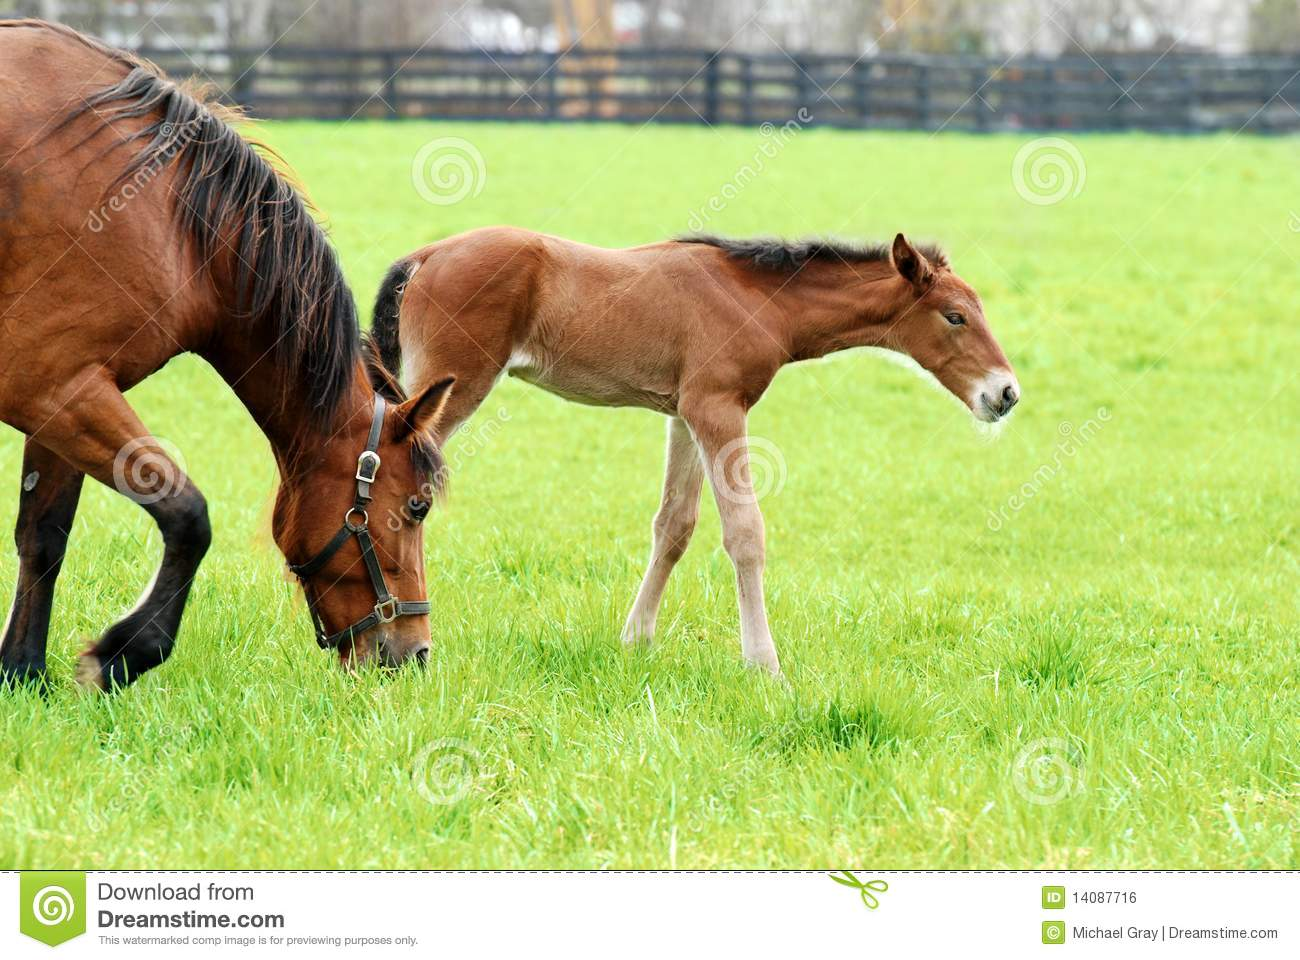 Colt and mare grazing